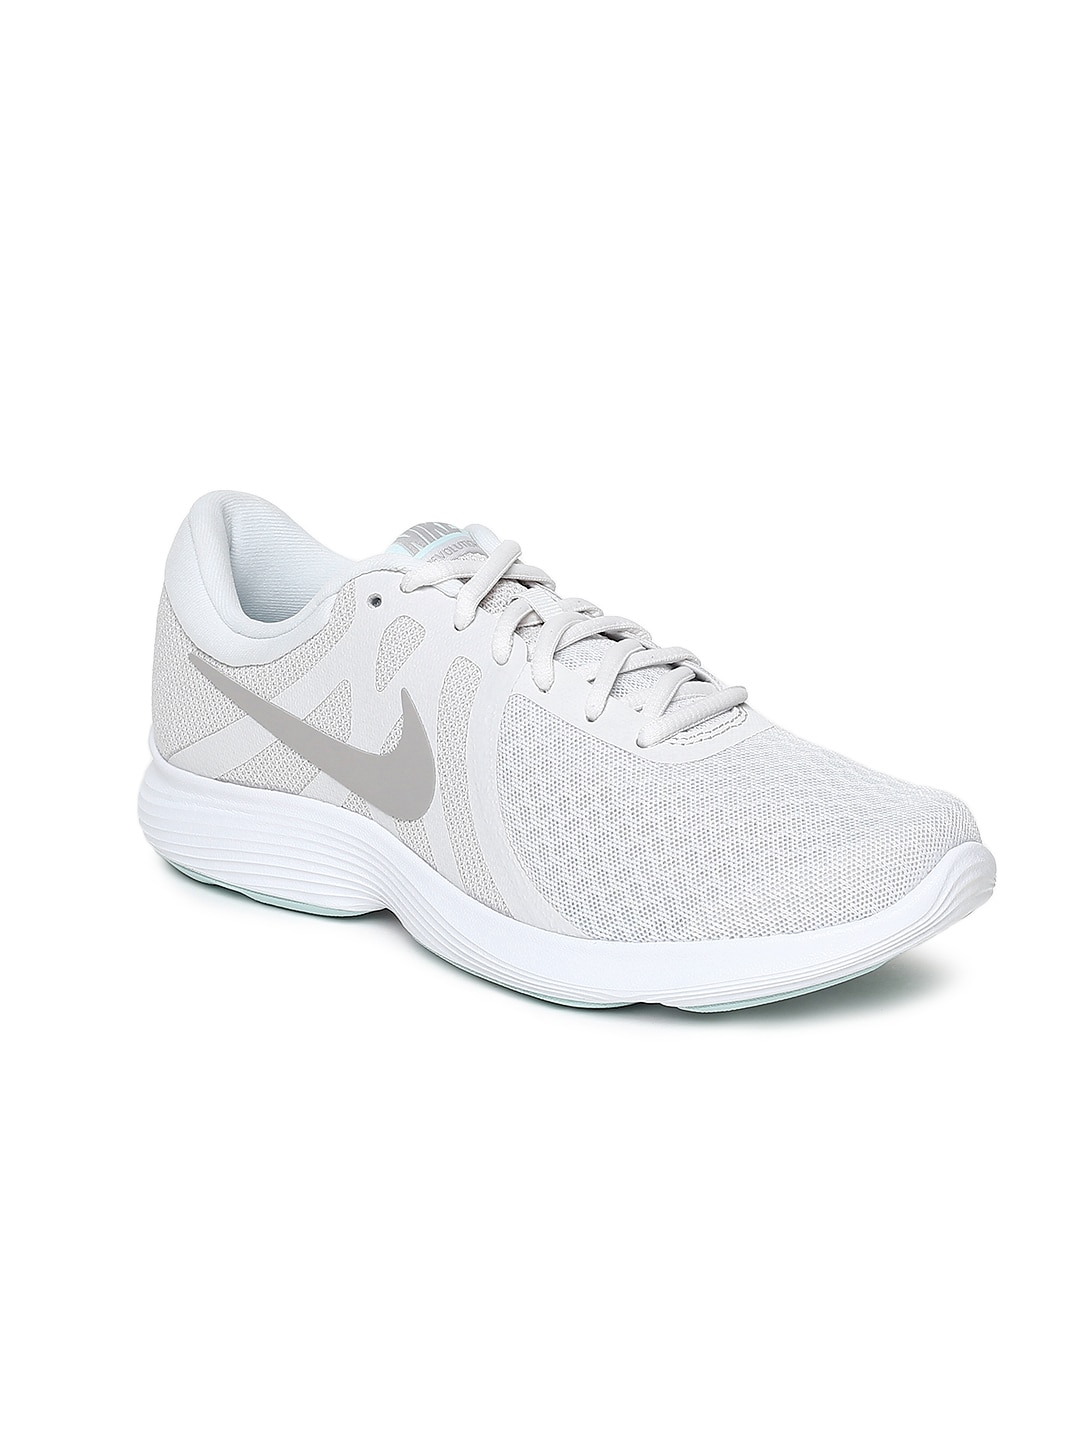 95690c246a0 Nike Running Shoes - Buy Nike Running Shoes Online